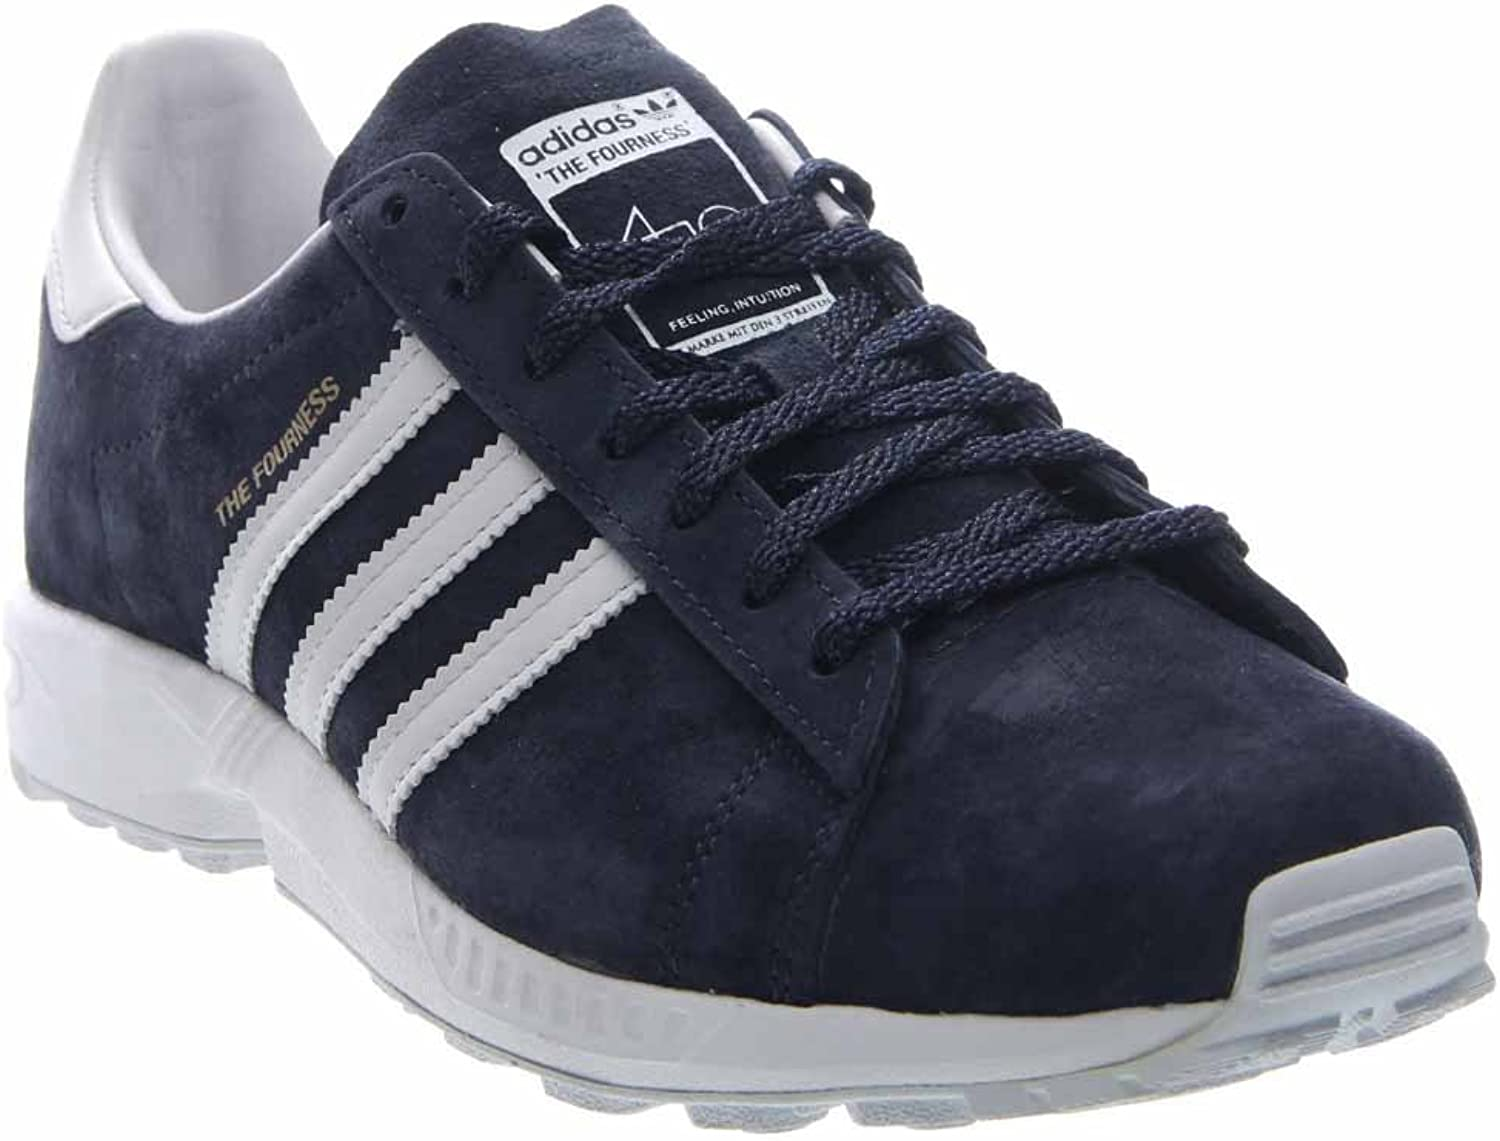 Adidas Campus 8000 US 7.5 Blau Turnschuhe UK 7 EU 40,5